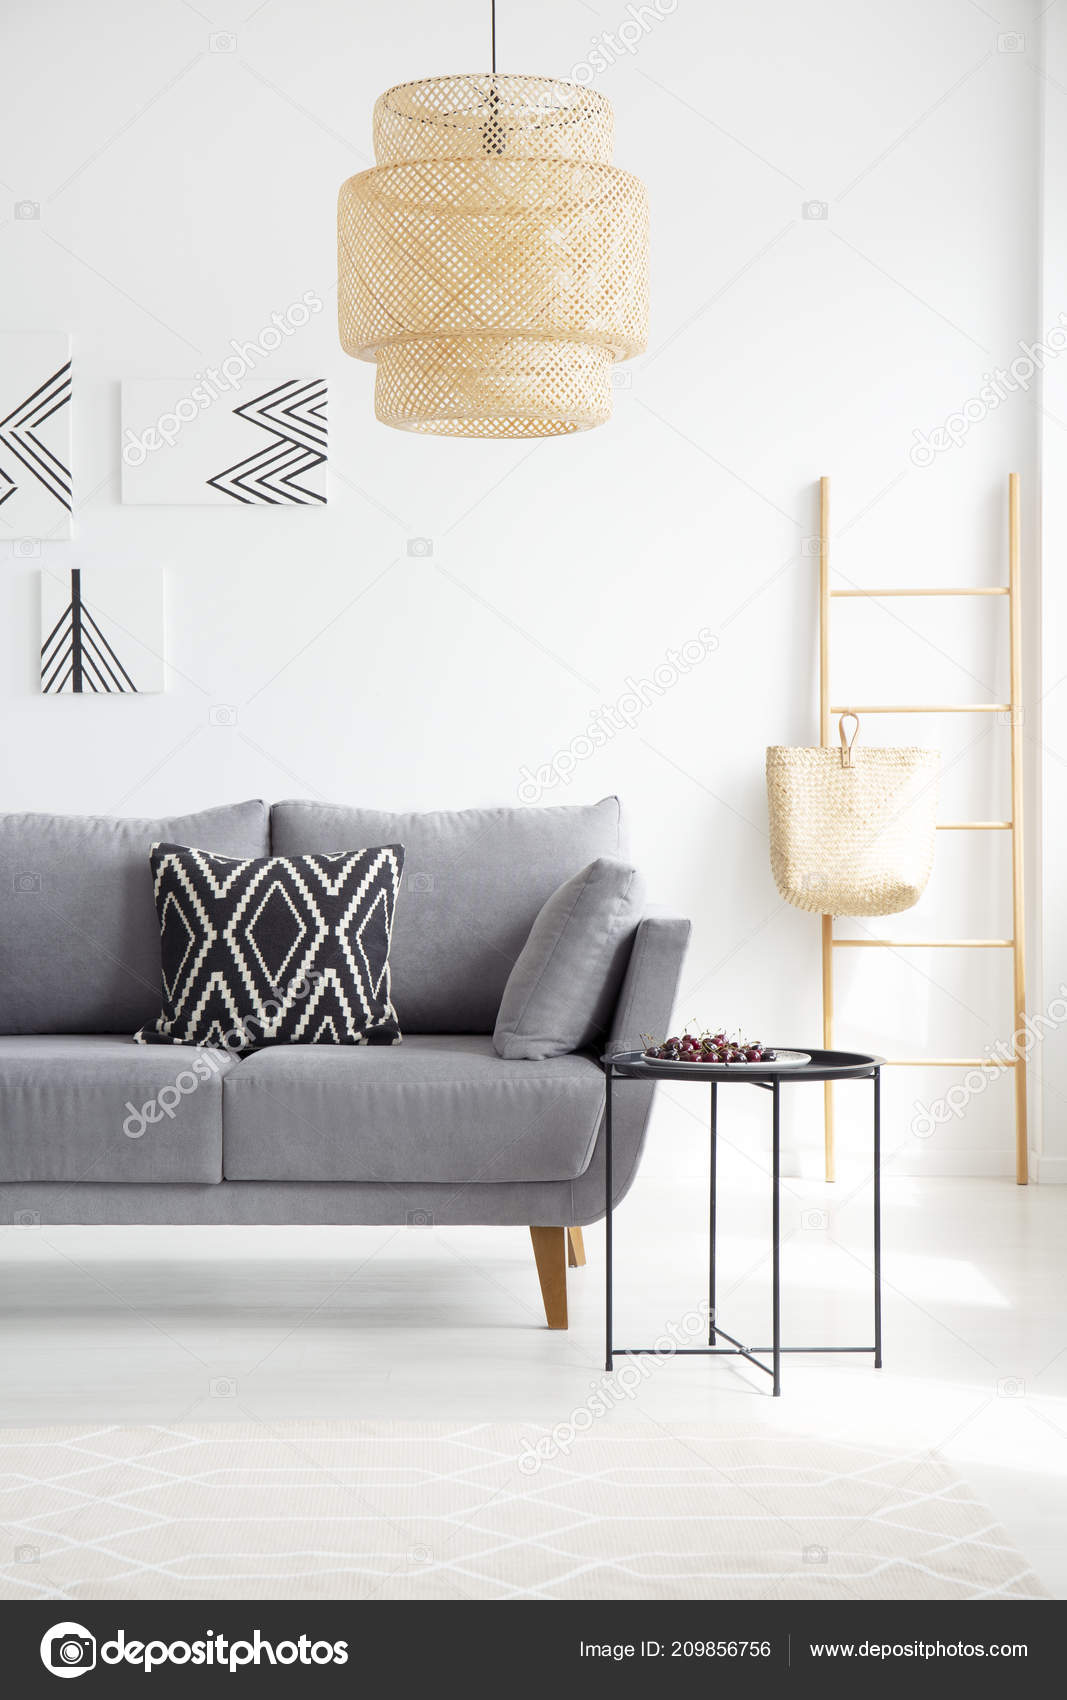 Surprising Real Photo Boho Black White Pillow Gray Couch Standing Next Machost Co Dining Chair Design Ideas Machostcouk